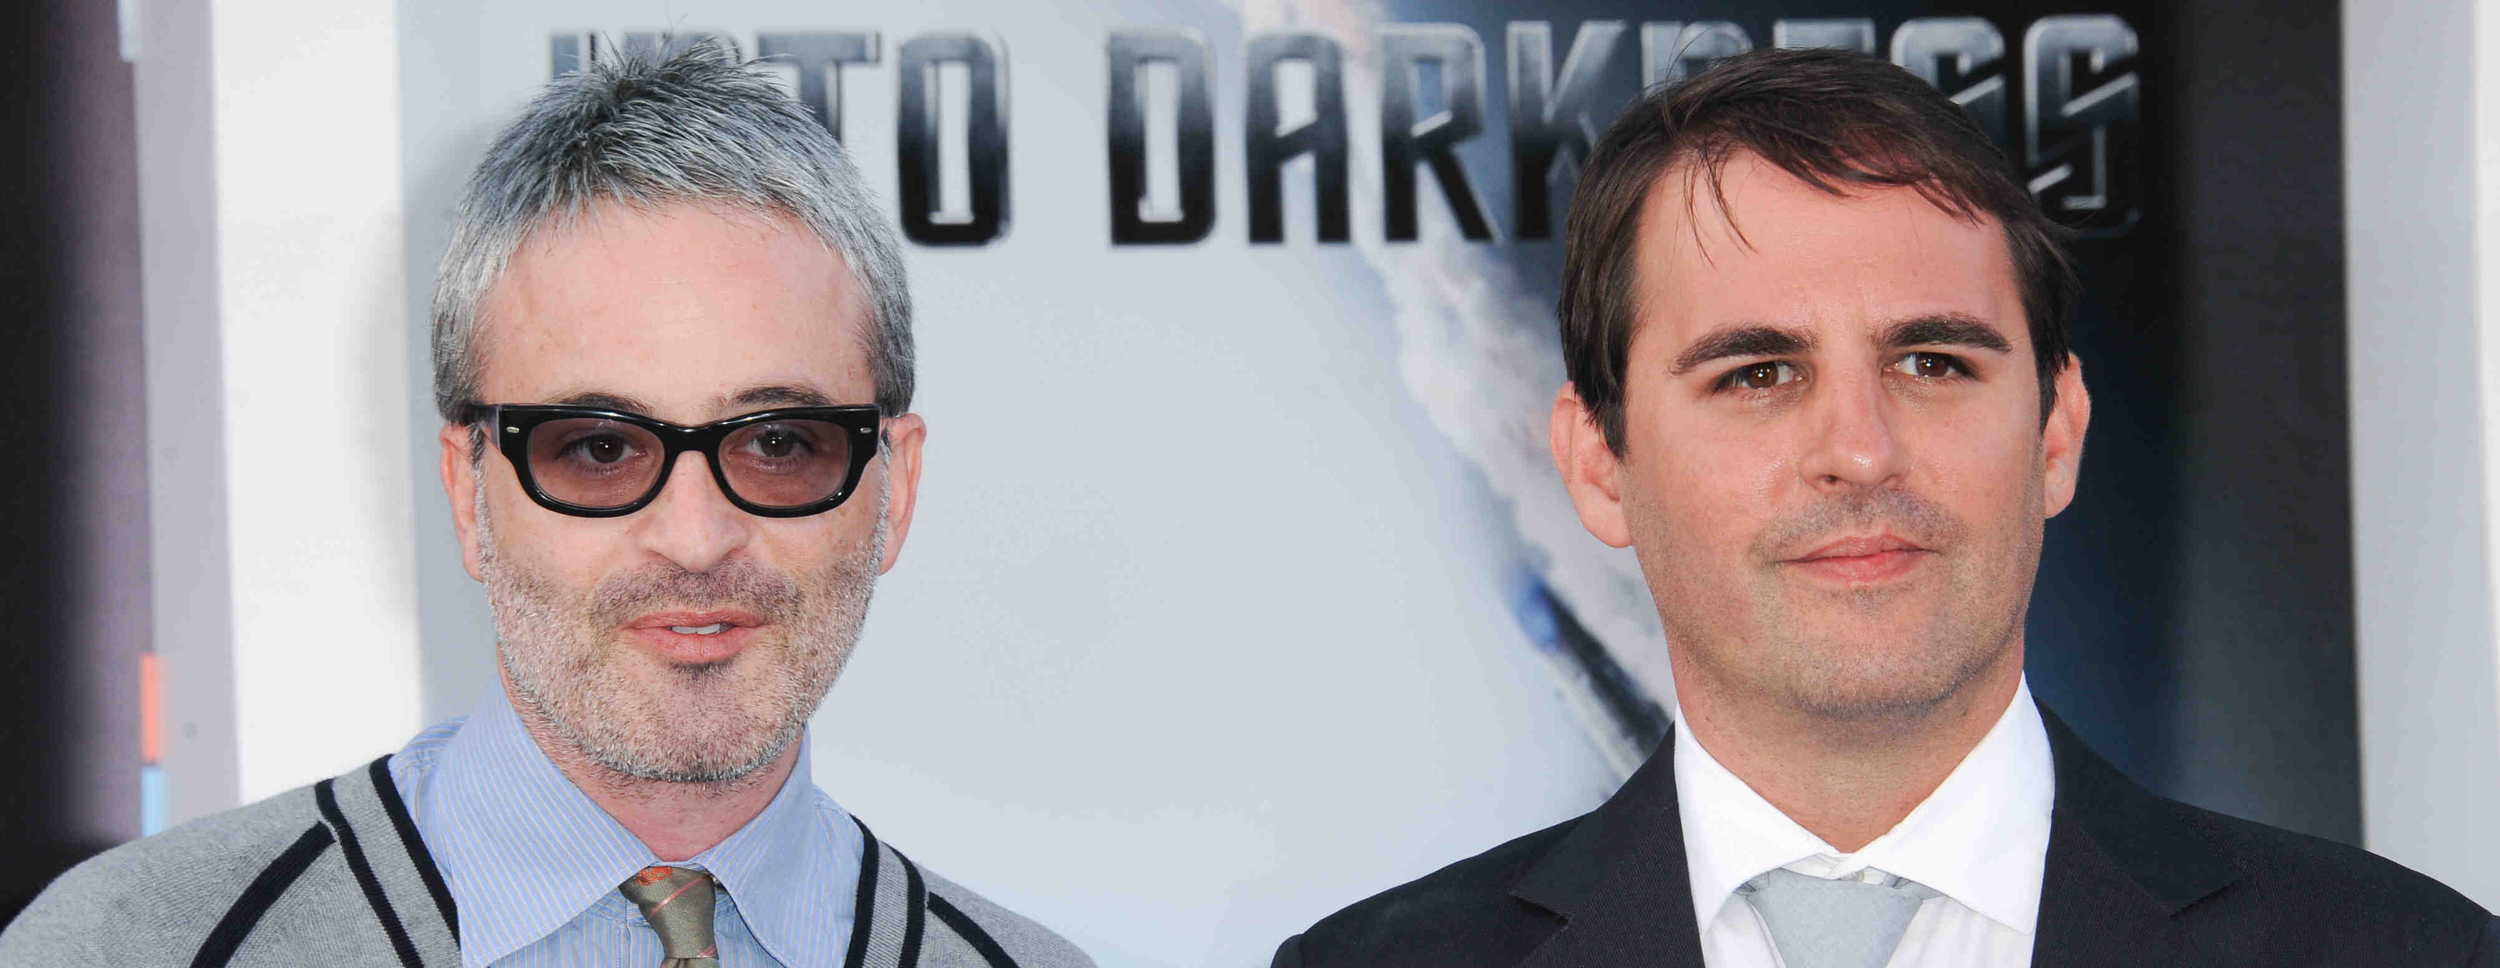 Alex Kurtzman and Roberto Orci at the Star Trek Into Darkness premiere on May 15, 2013 in Hollywood. Photo credit: TrekMovie.com.